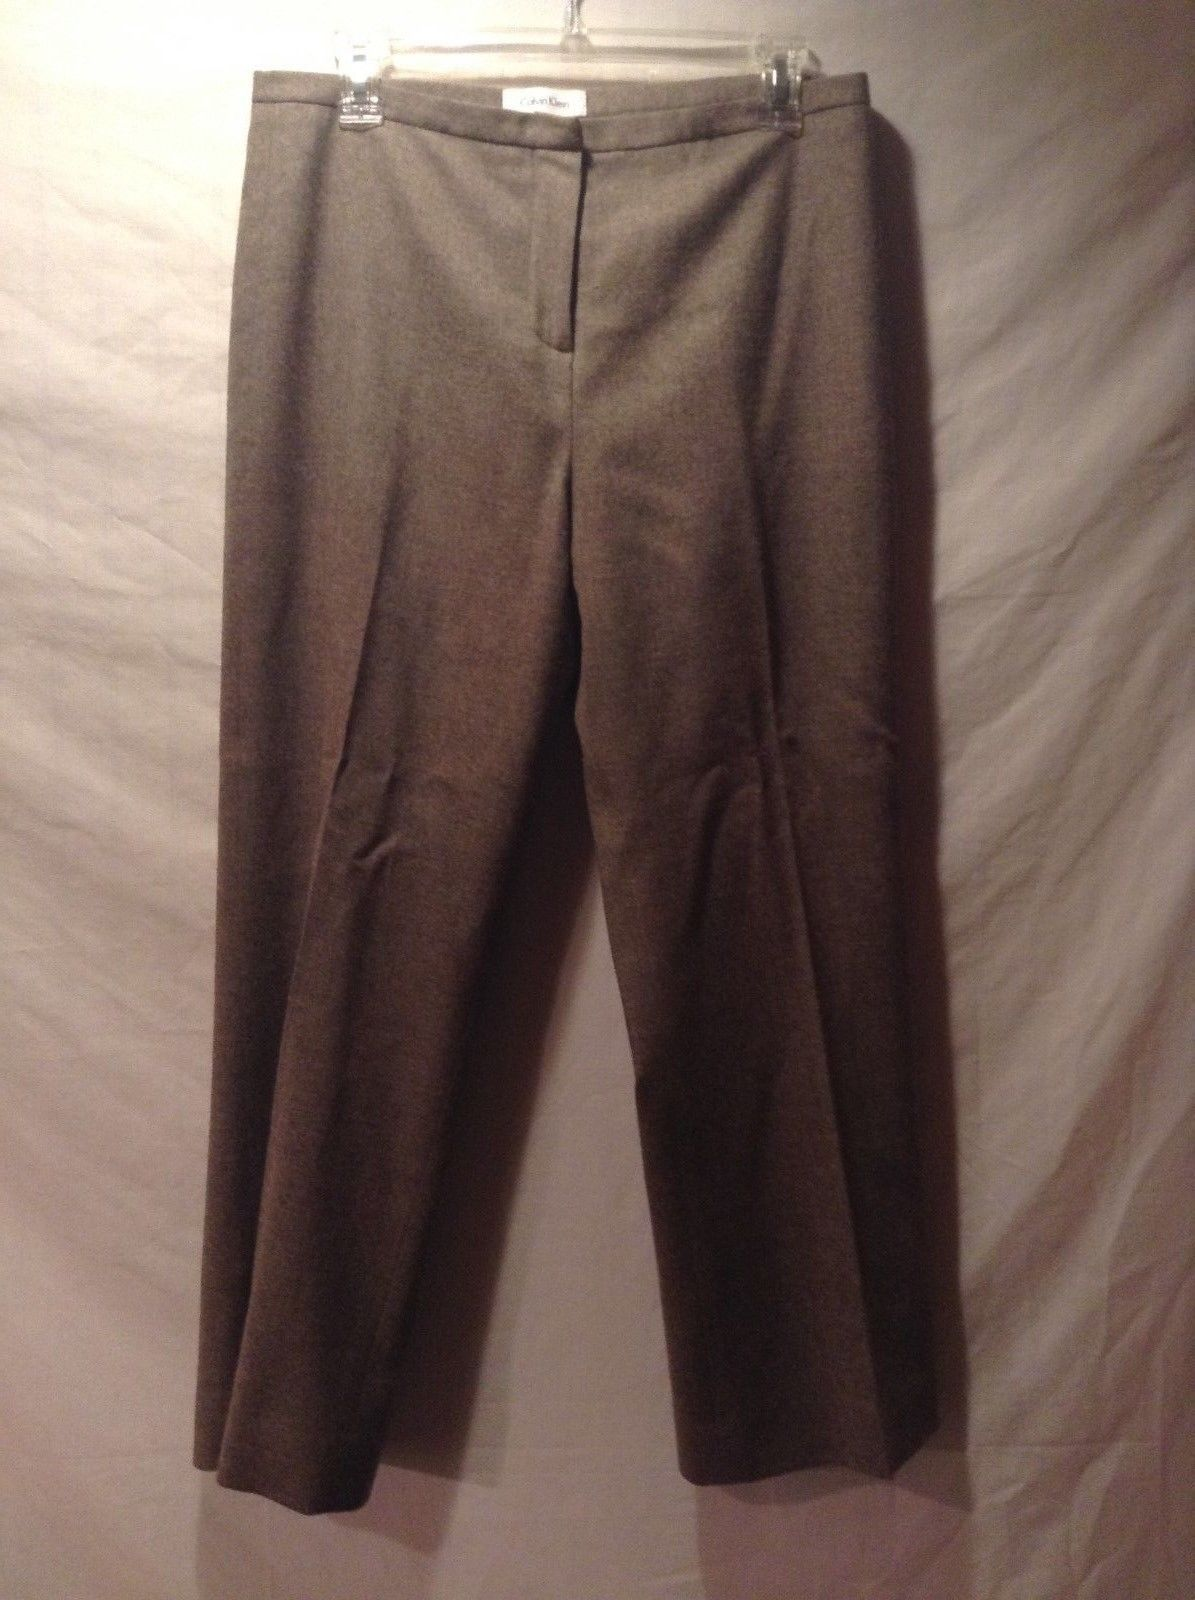 Women's Calvin Klein Gray Dress Pants Size 10